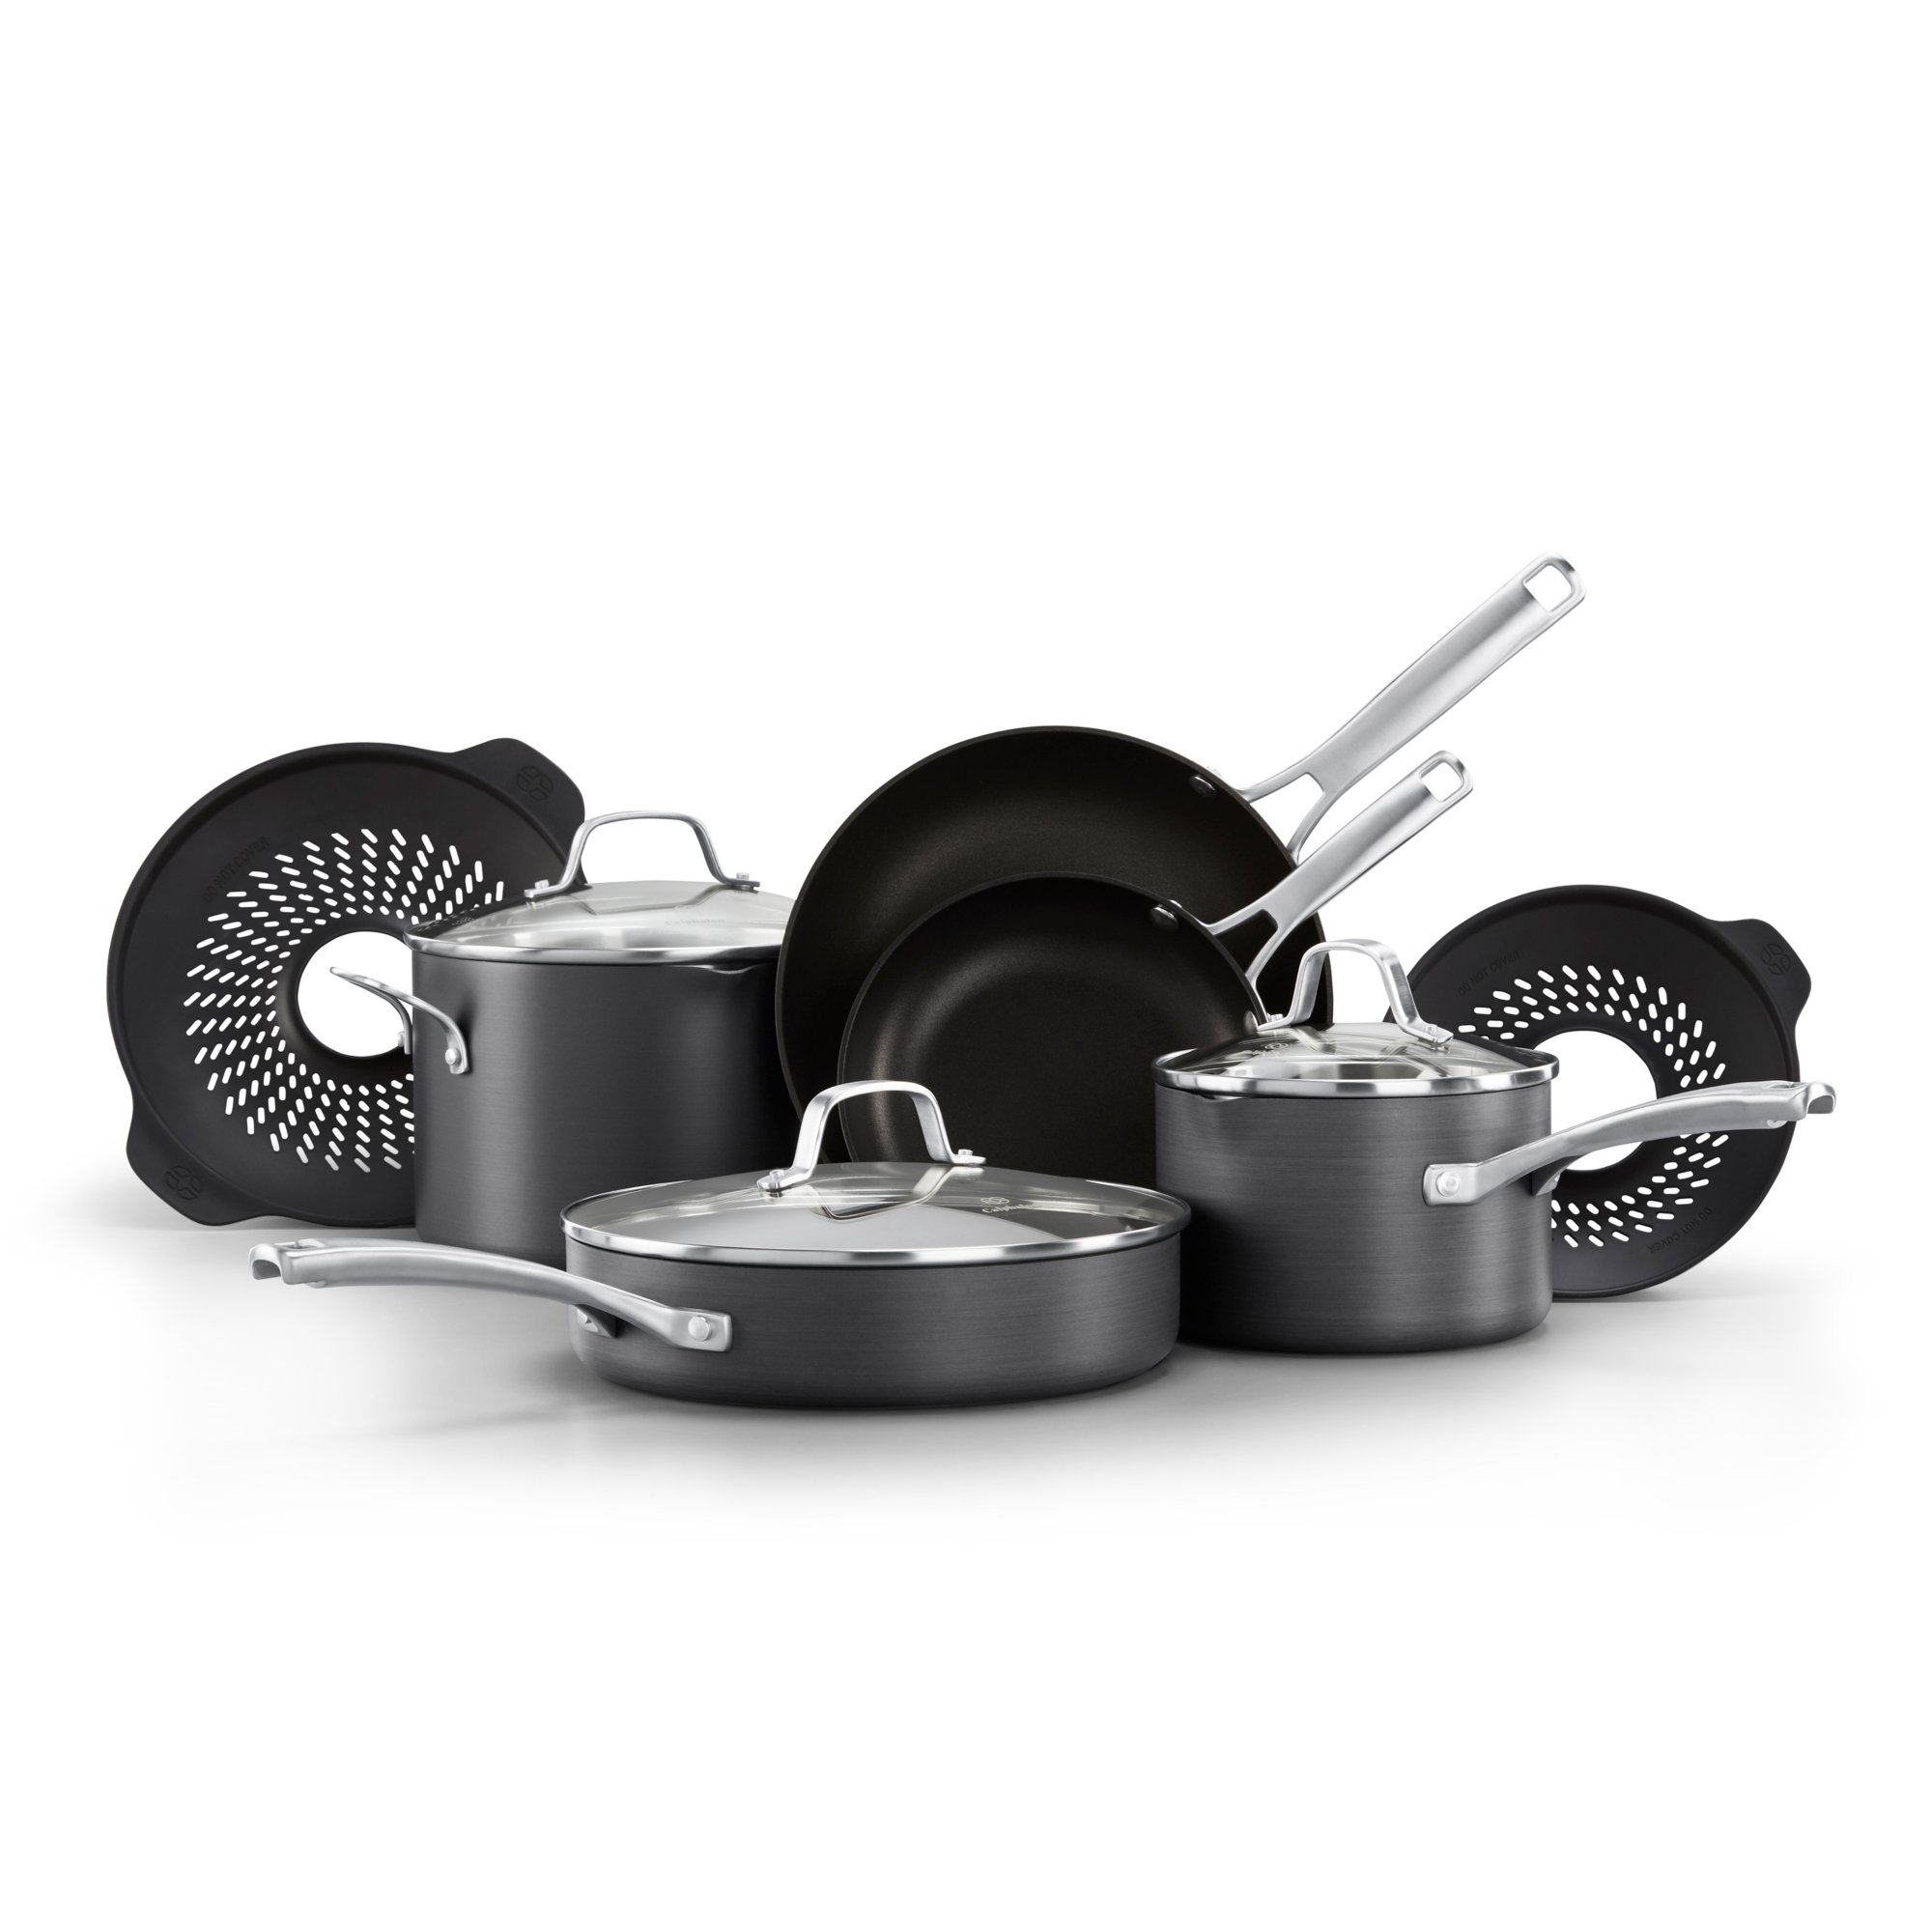 Calphalon Classic™ Nonstick 10-Piece Cookware Set with No-Boil-Over Inserts